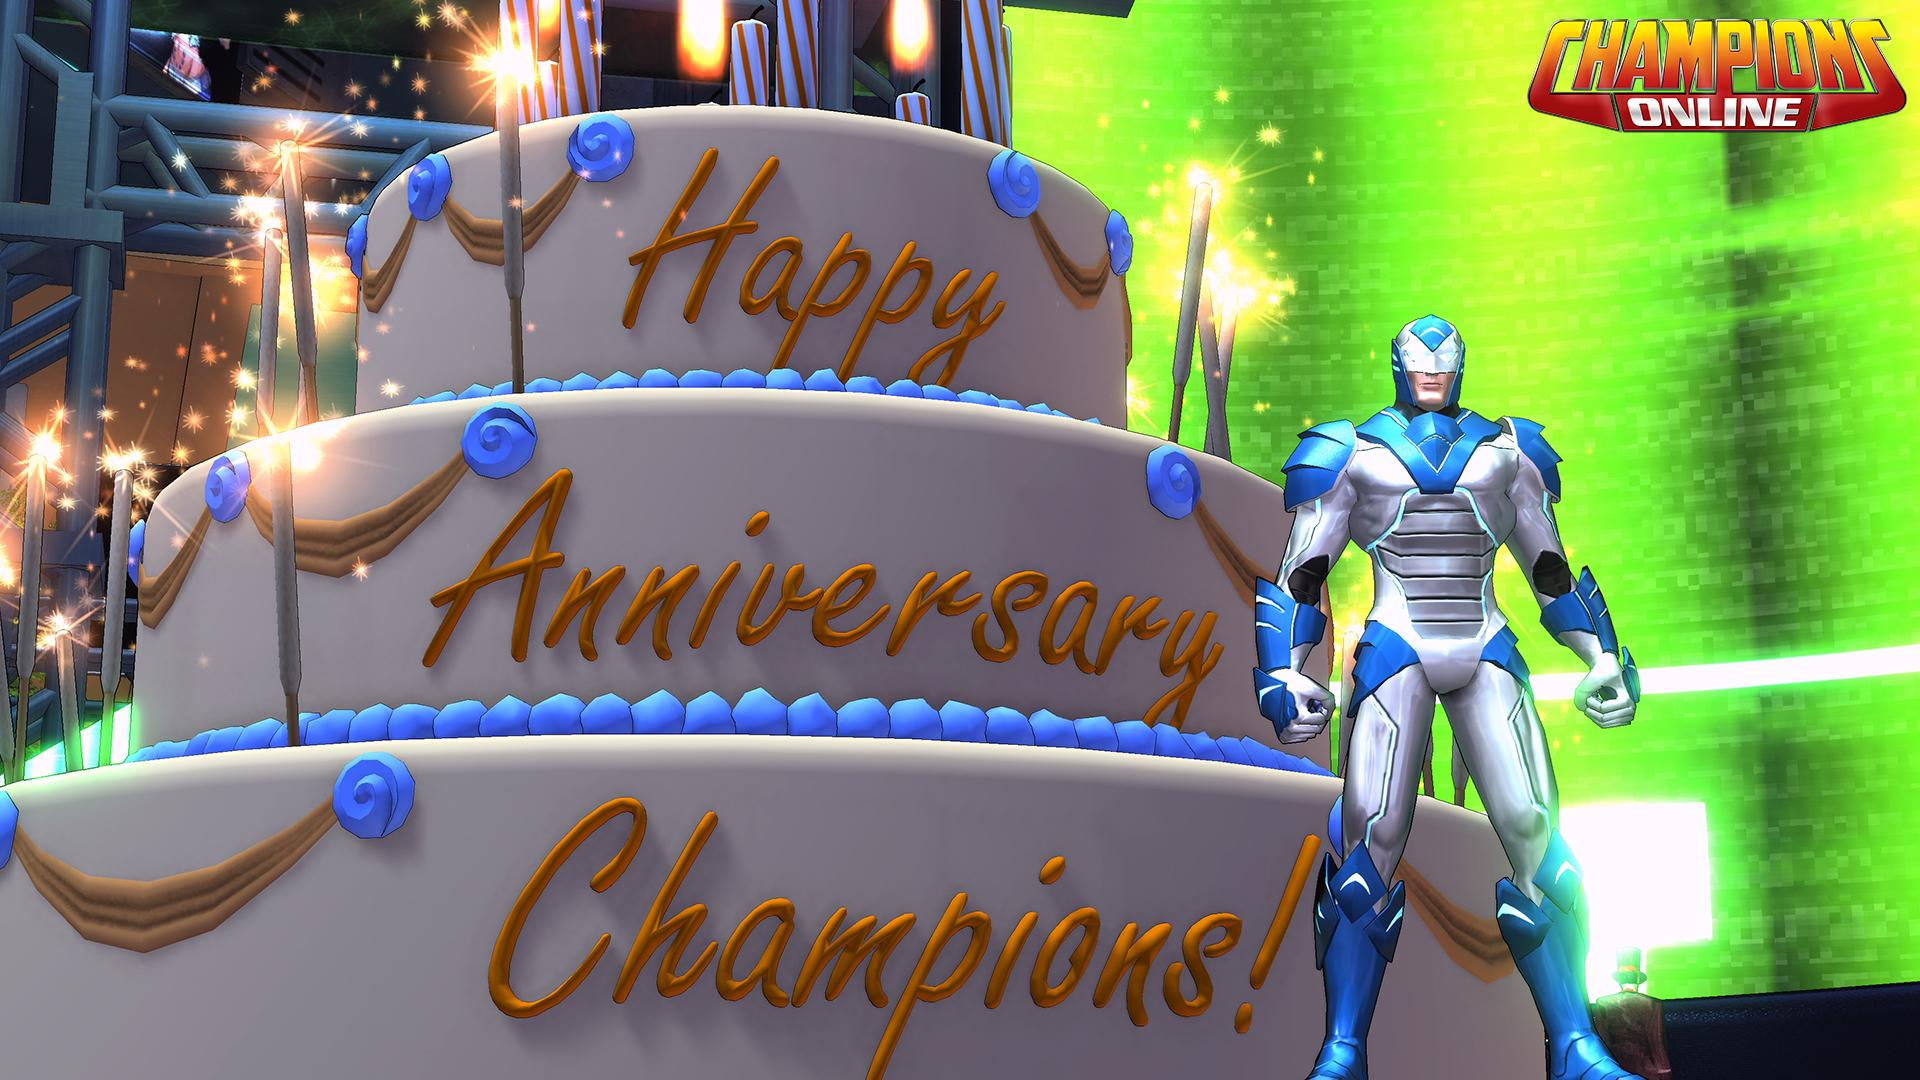 Champions Online 9th anniversary cats